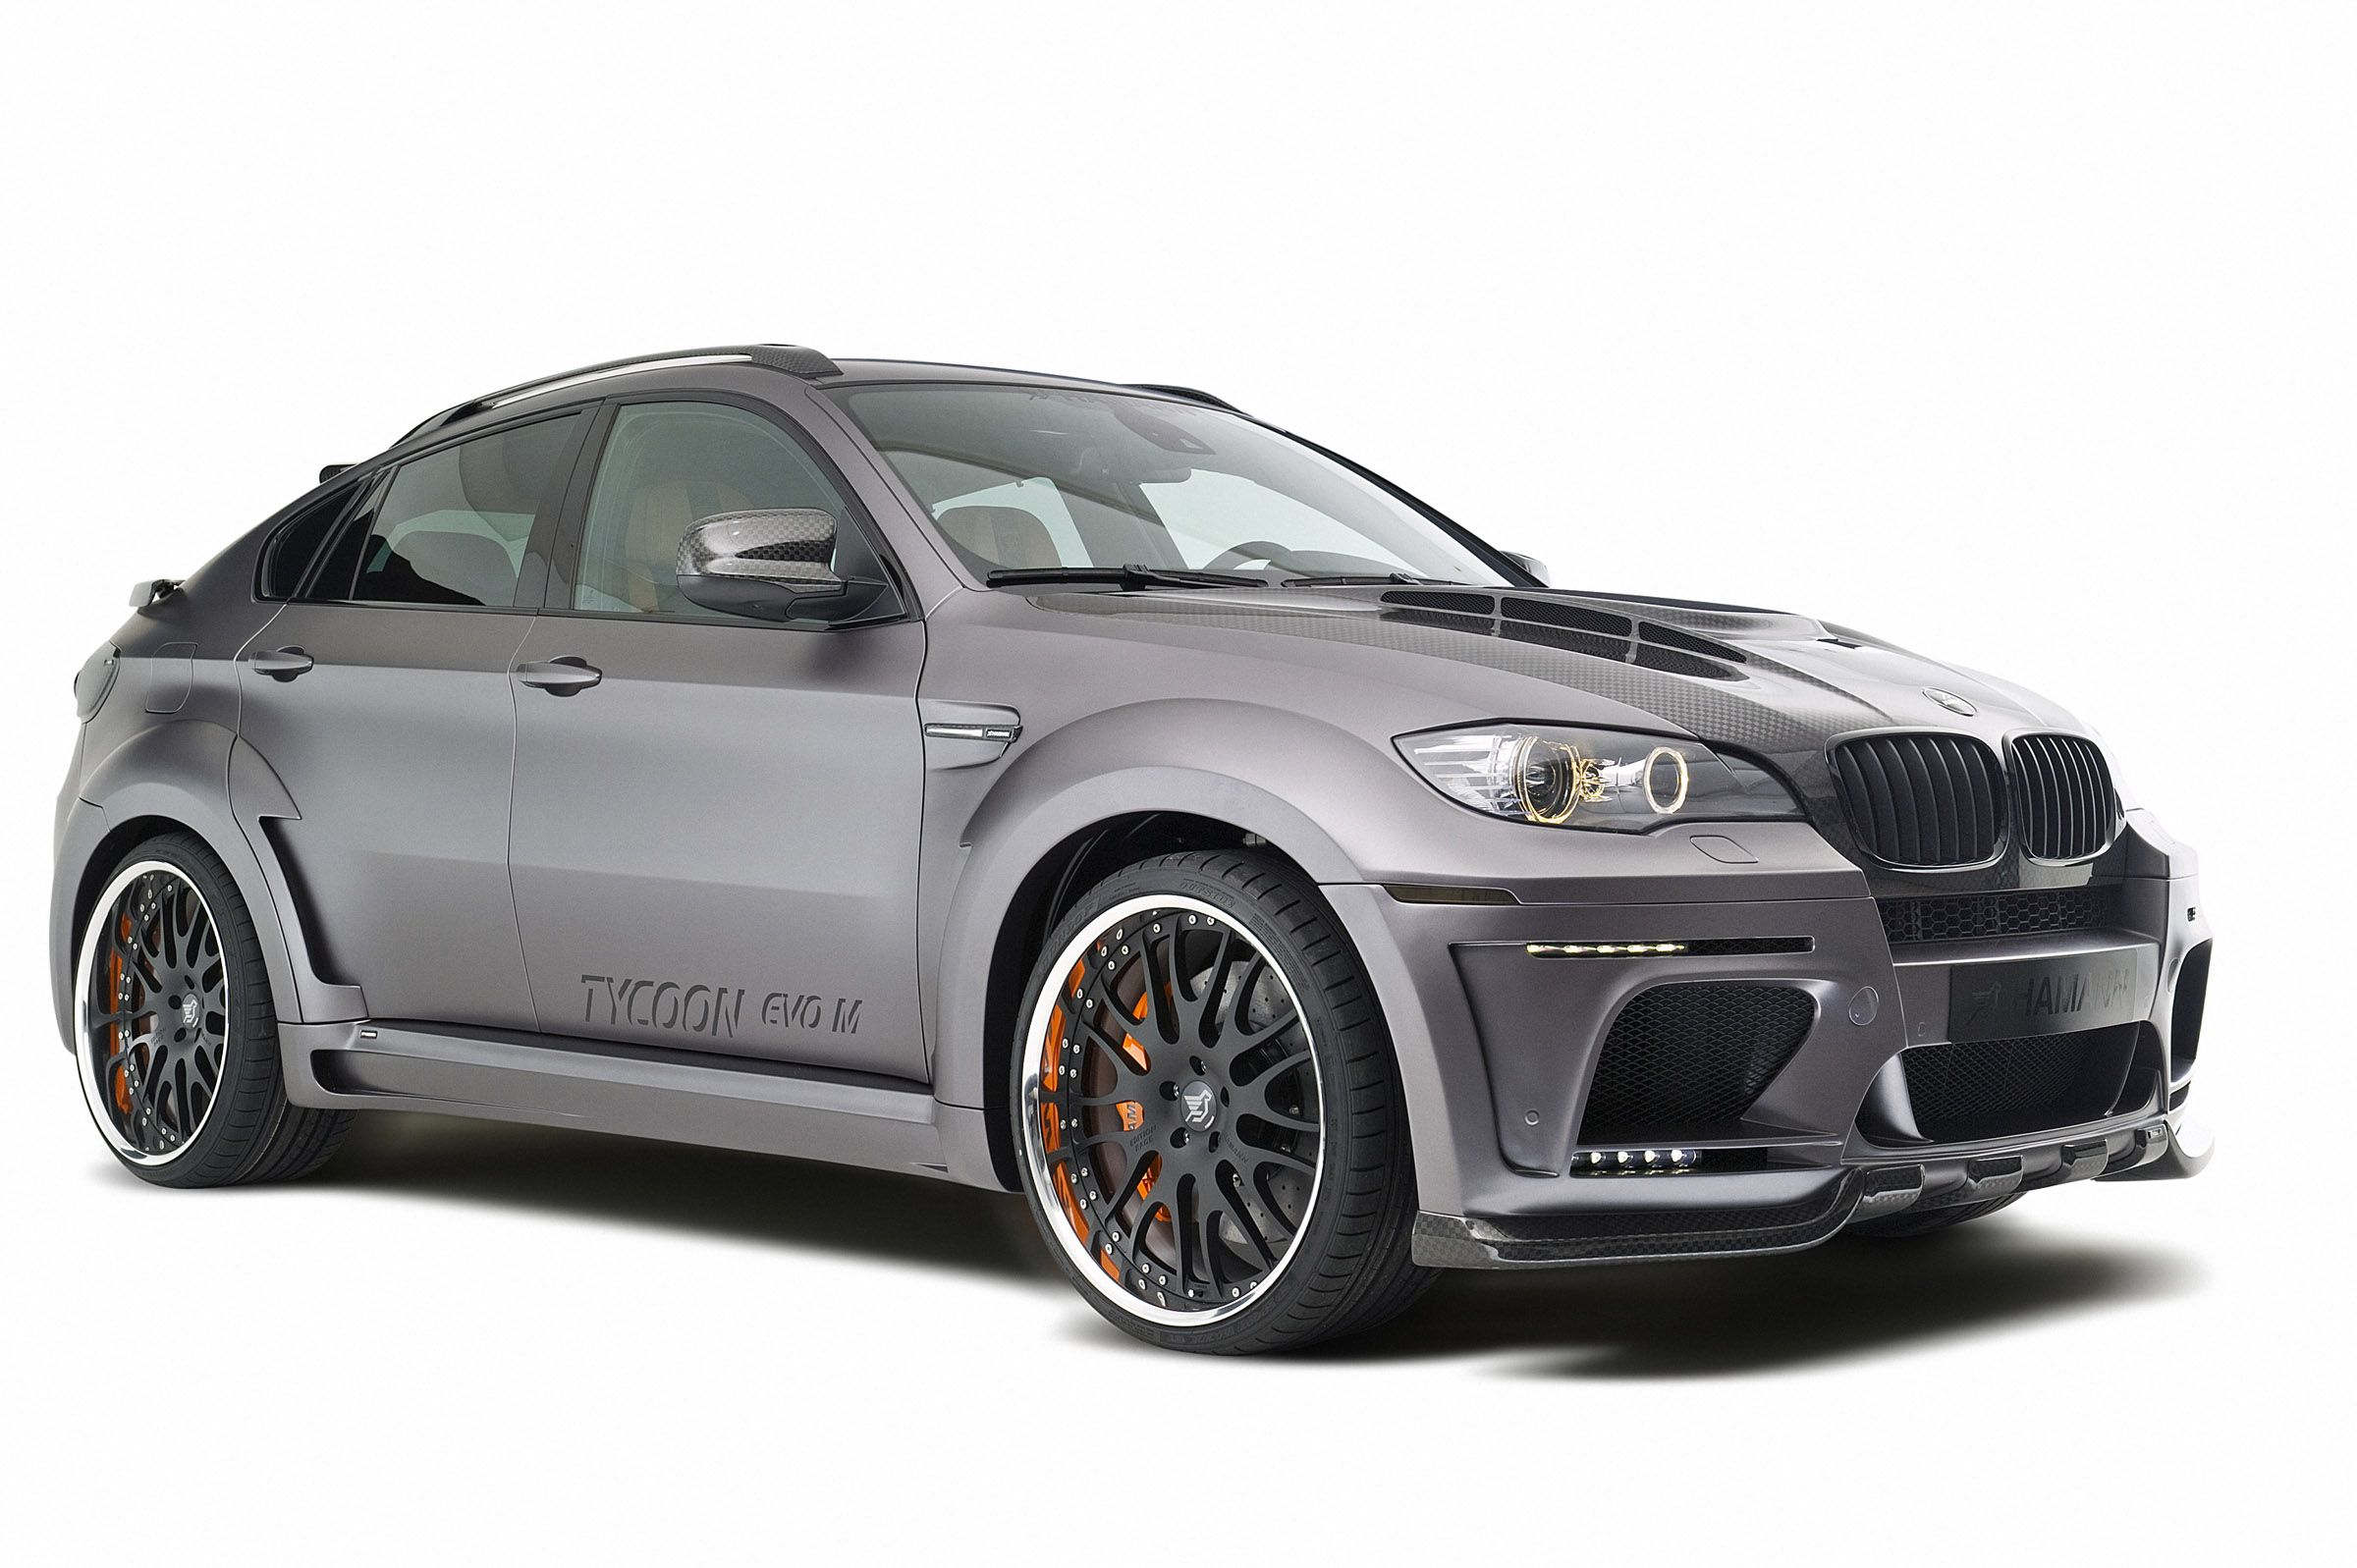 Bmw x6 photos pics images the hotest tuning of bmw x6 m future insha allah pinterest bmw x6 bmw and cars